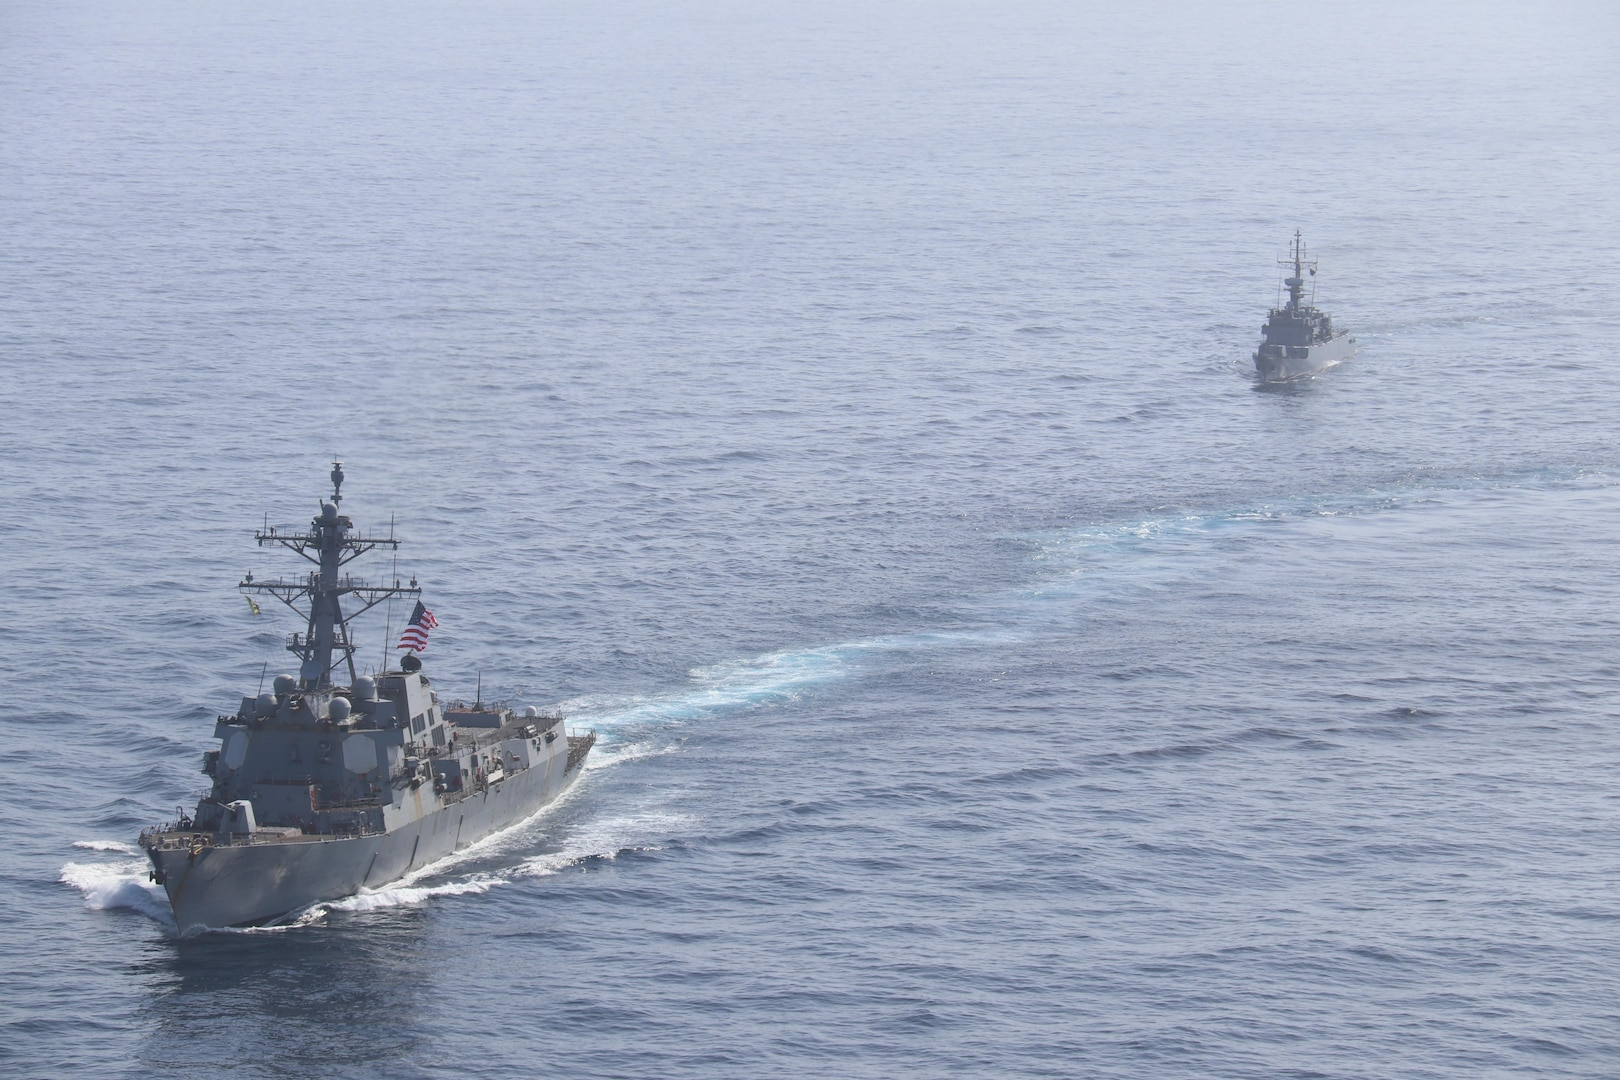 USS James E. Williams (DDG 95) conducts a  passing exercise with the Colombian navy in the Caribbean Sea.